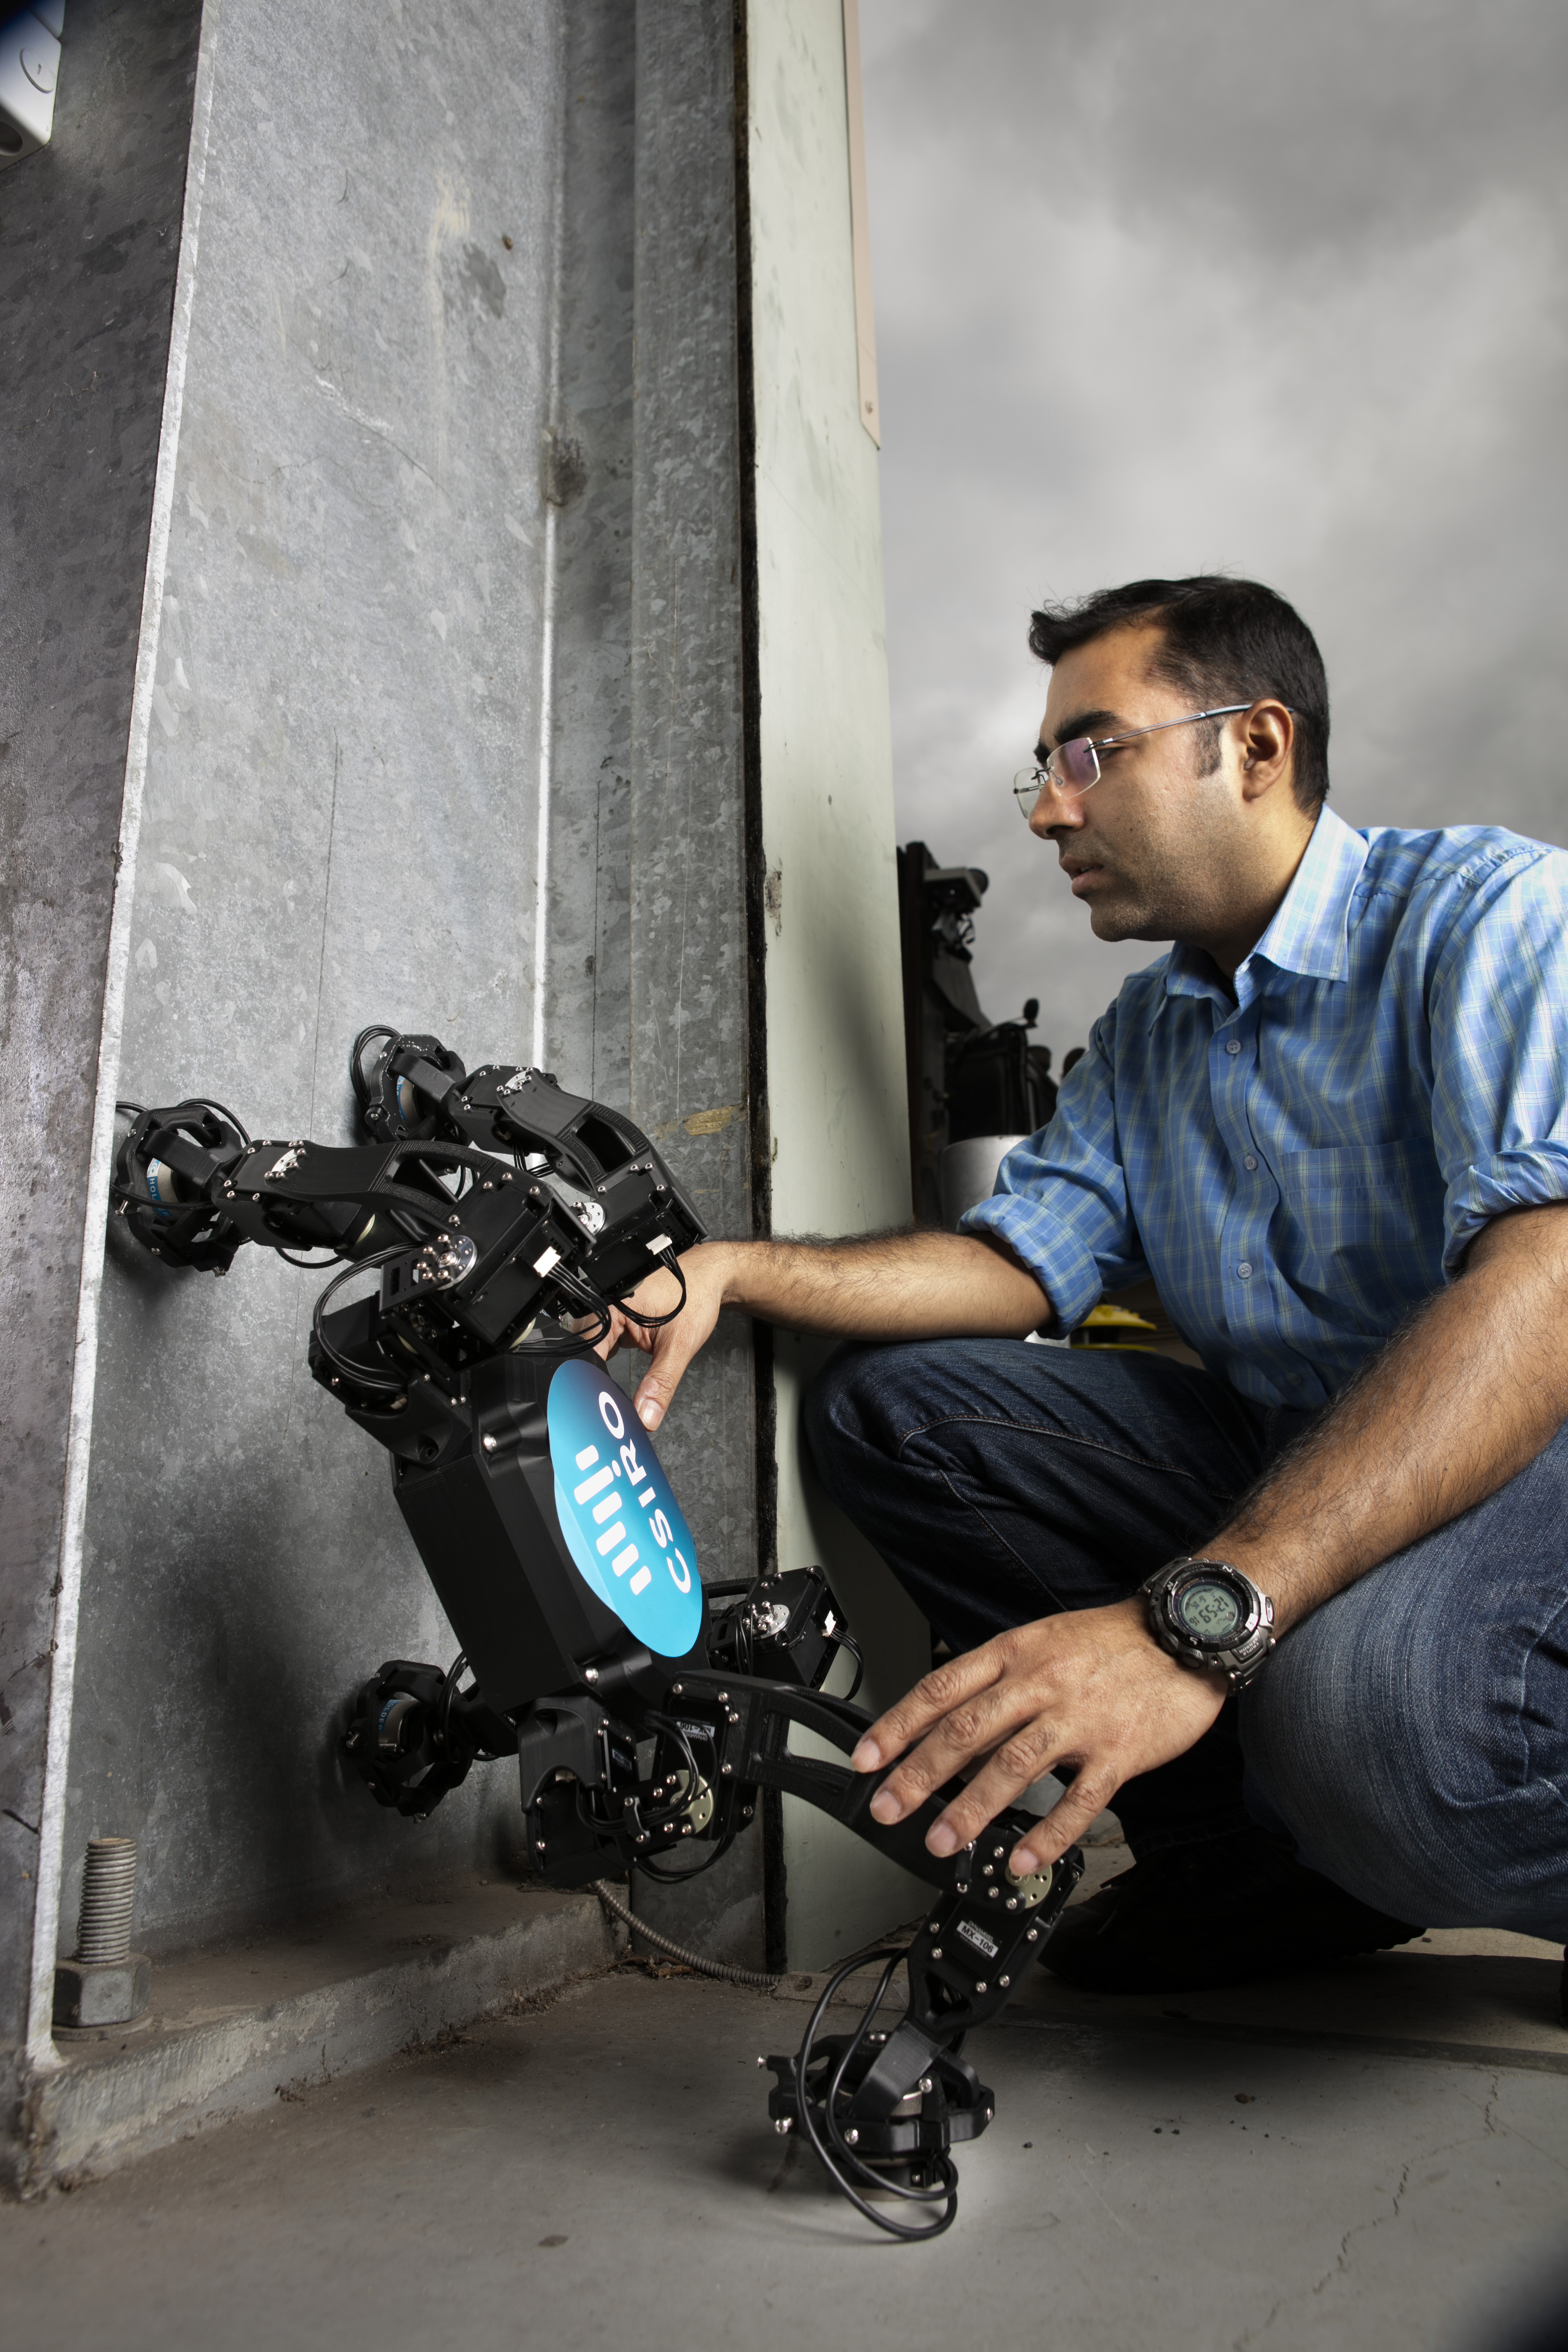 Scientist testing a legged-robot equipped with controllable magnetic adhesion as it begins to walk up a vertical surface.